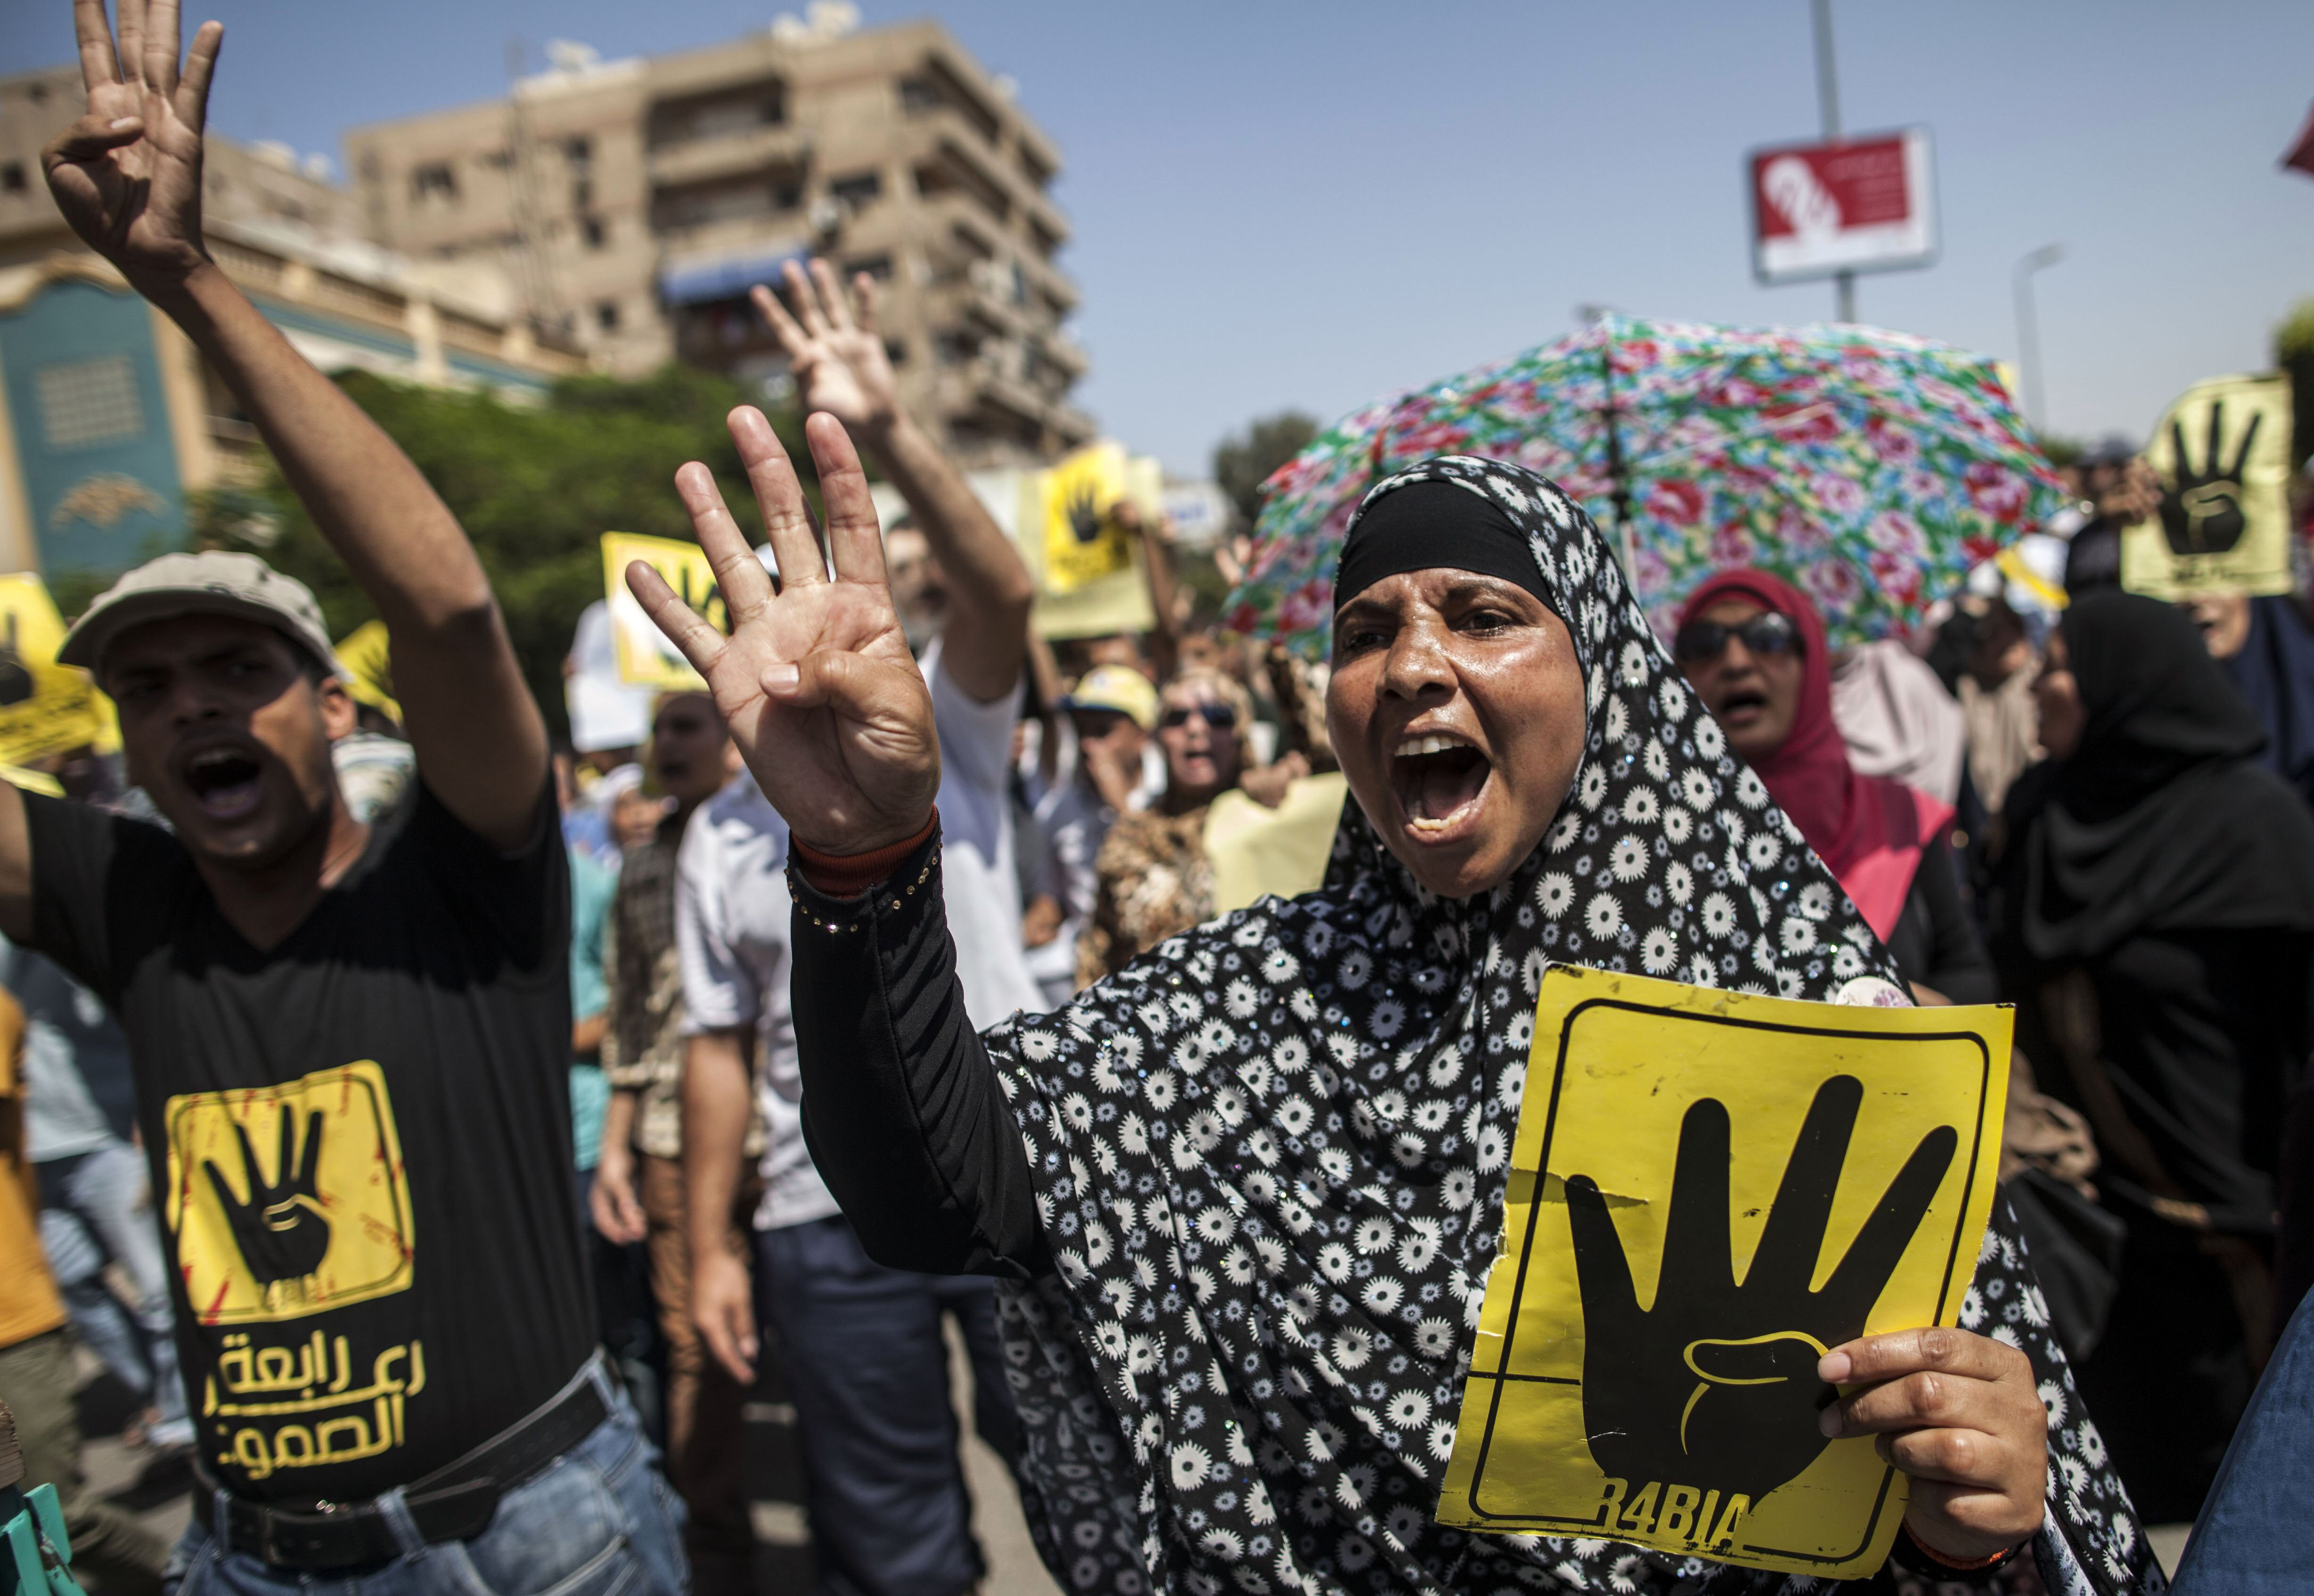 Supporters of ousted Egyptian president Mohamed Morsi raise up posters with the four finger symbol during a demonstration against the military backed government in the Egyptian capital Cairo, on September 13, 2013. (AFP Photo)